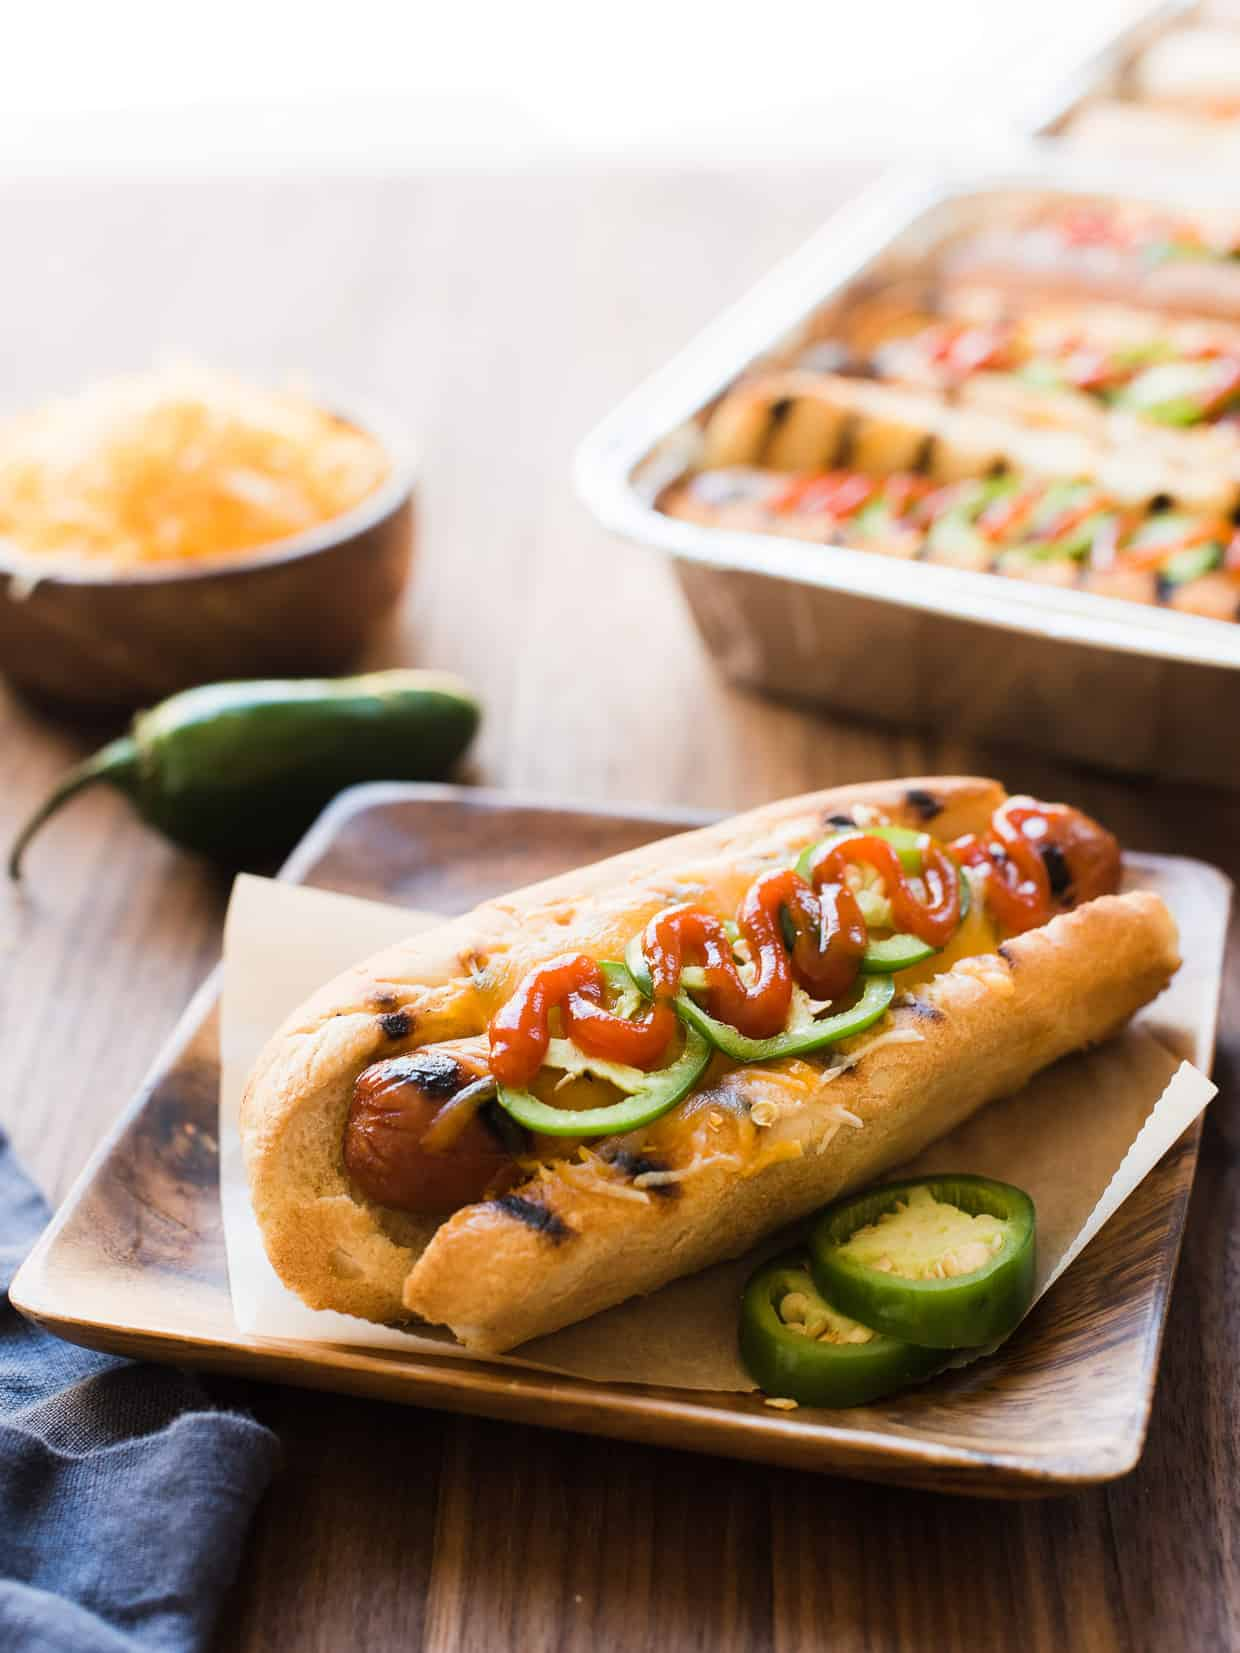 Sriracha Hot Dogs in a bun with cheese and jalapeños.